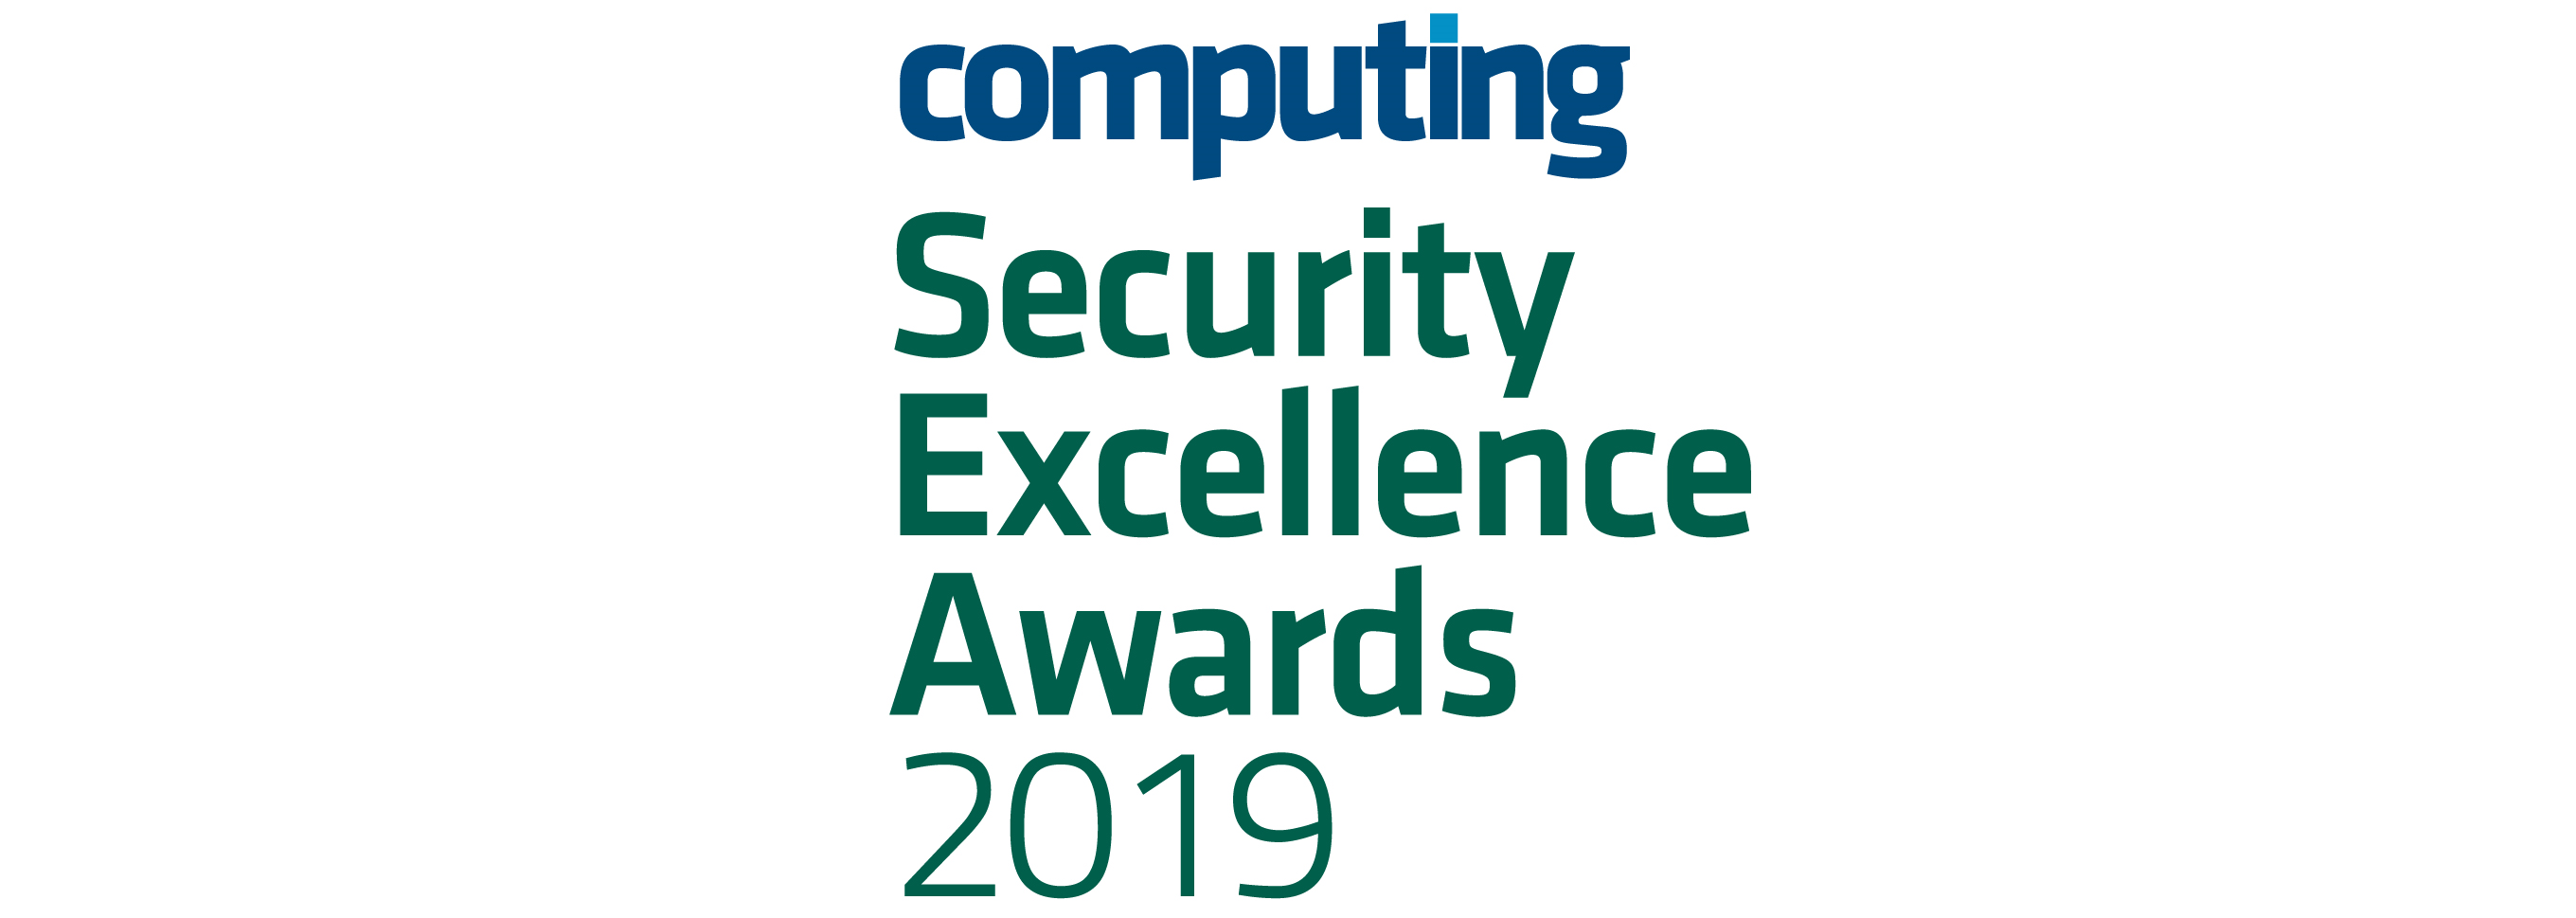 Computing Security Excellence Awards 2019 Shortlist